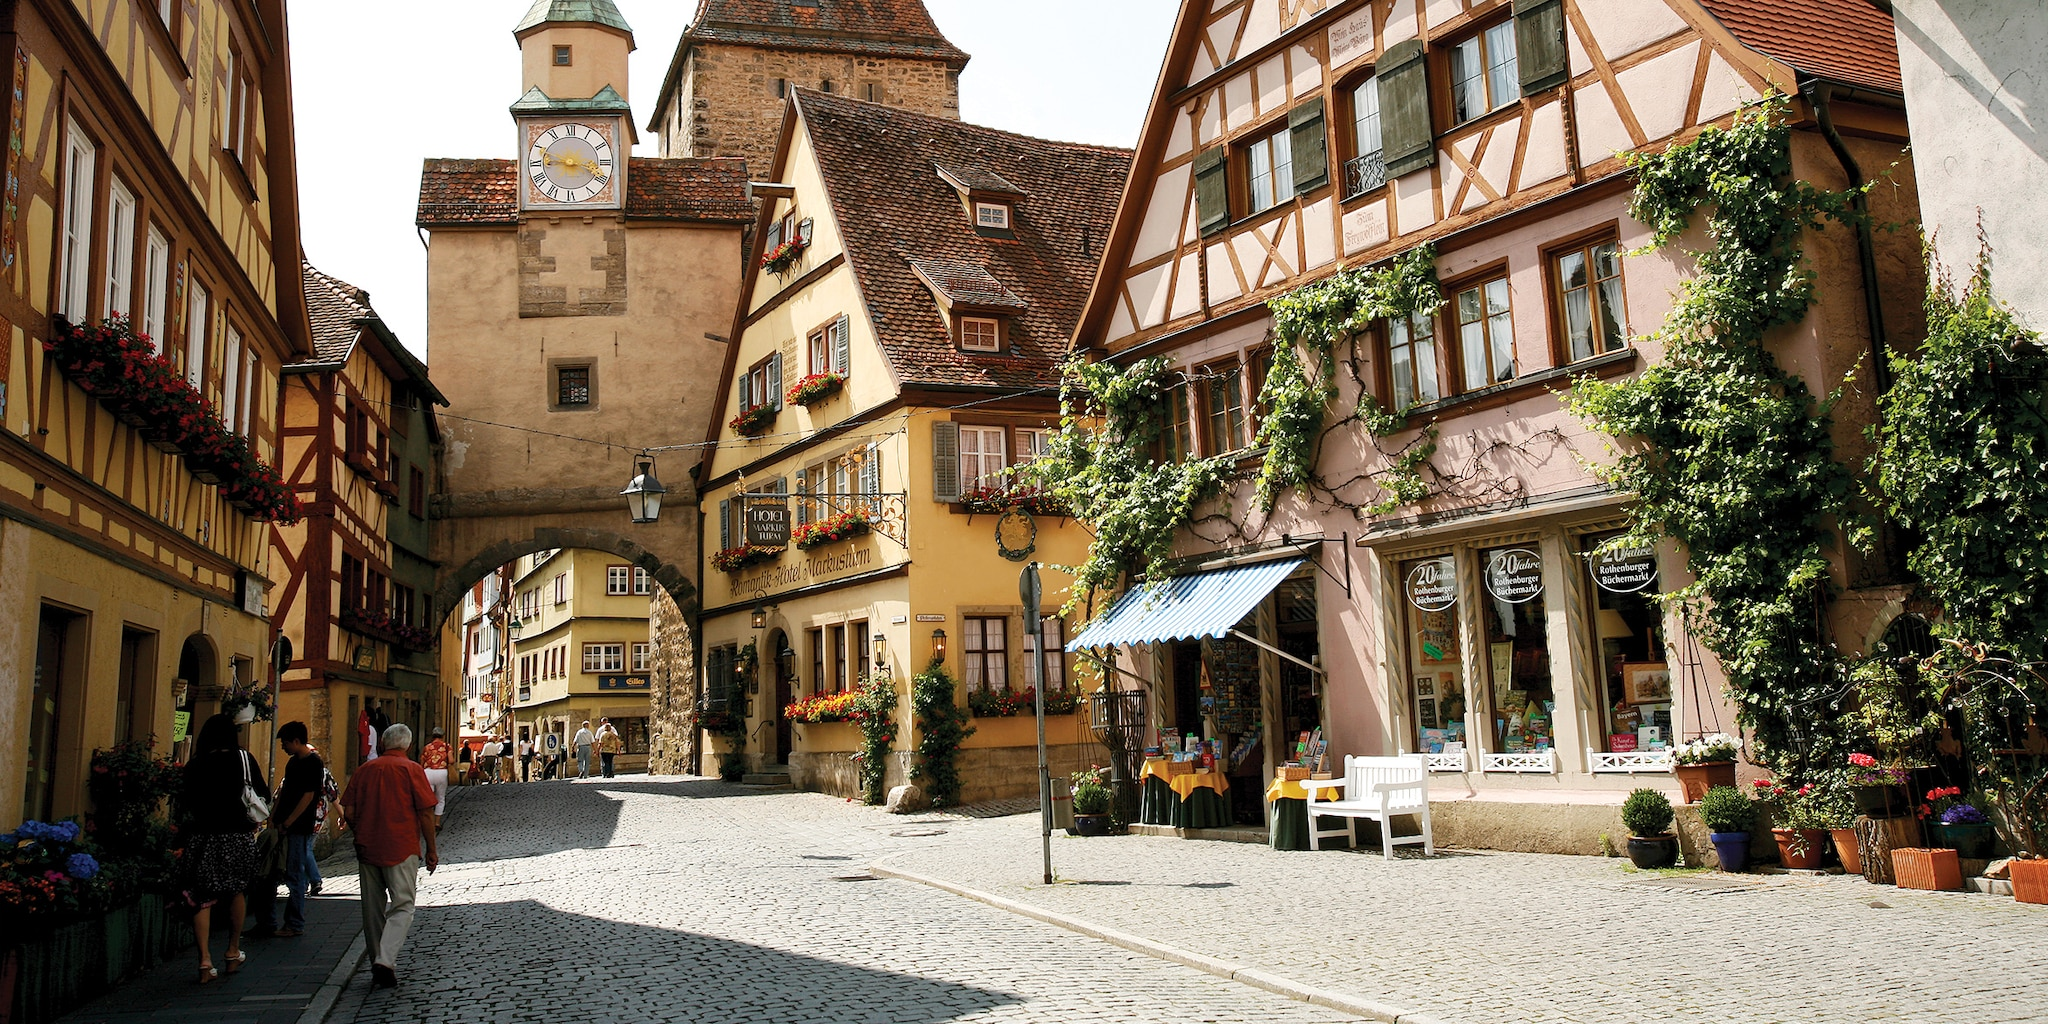 Shops line a cobblestone street in the storybook style town of Rothenburg